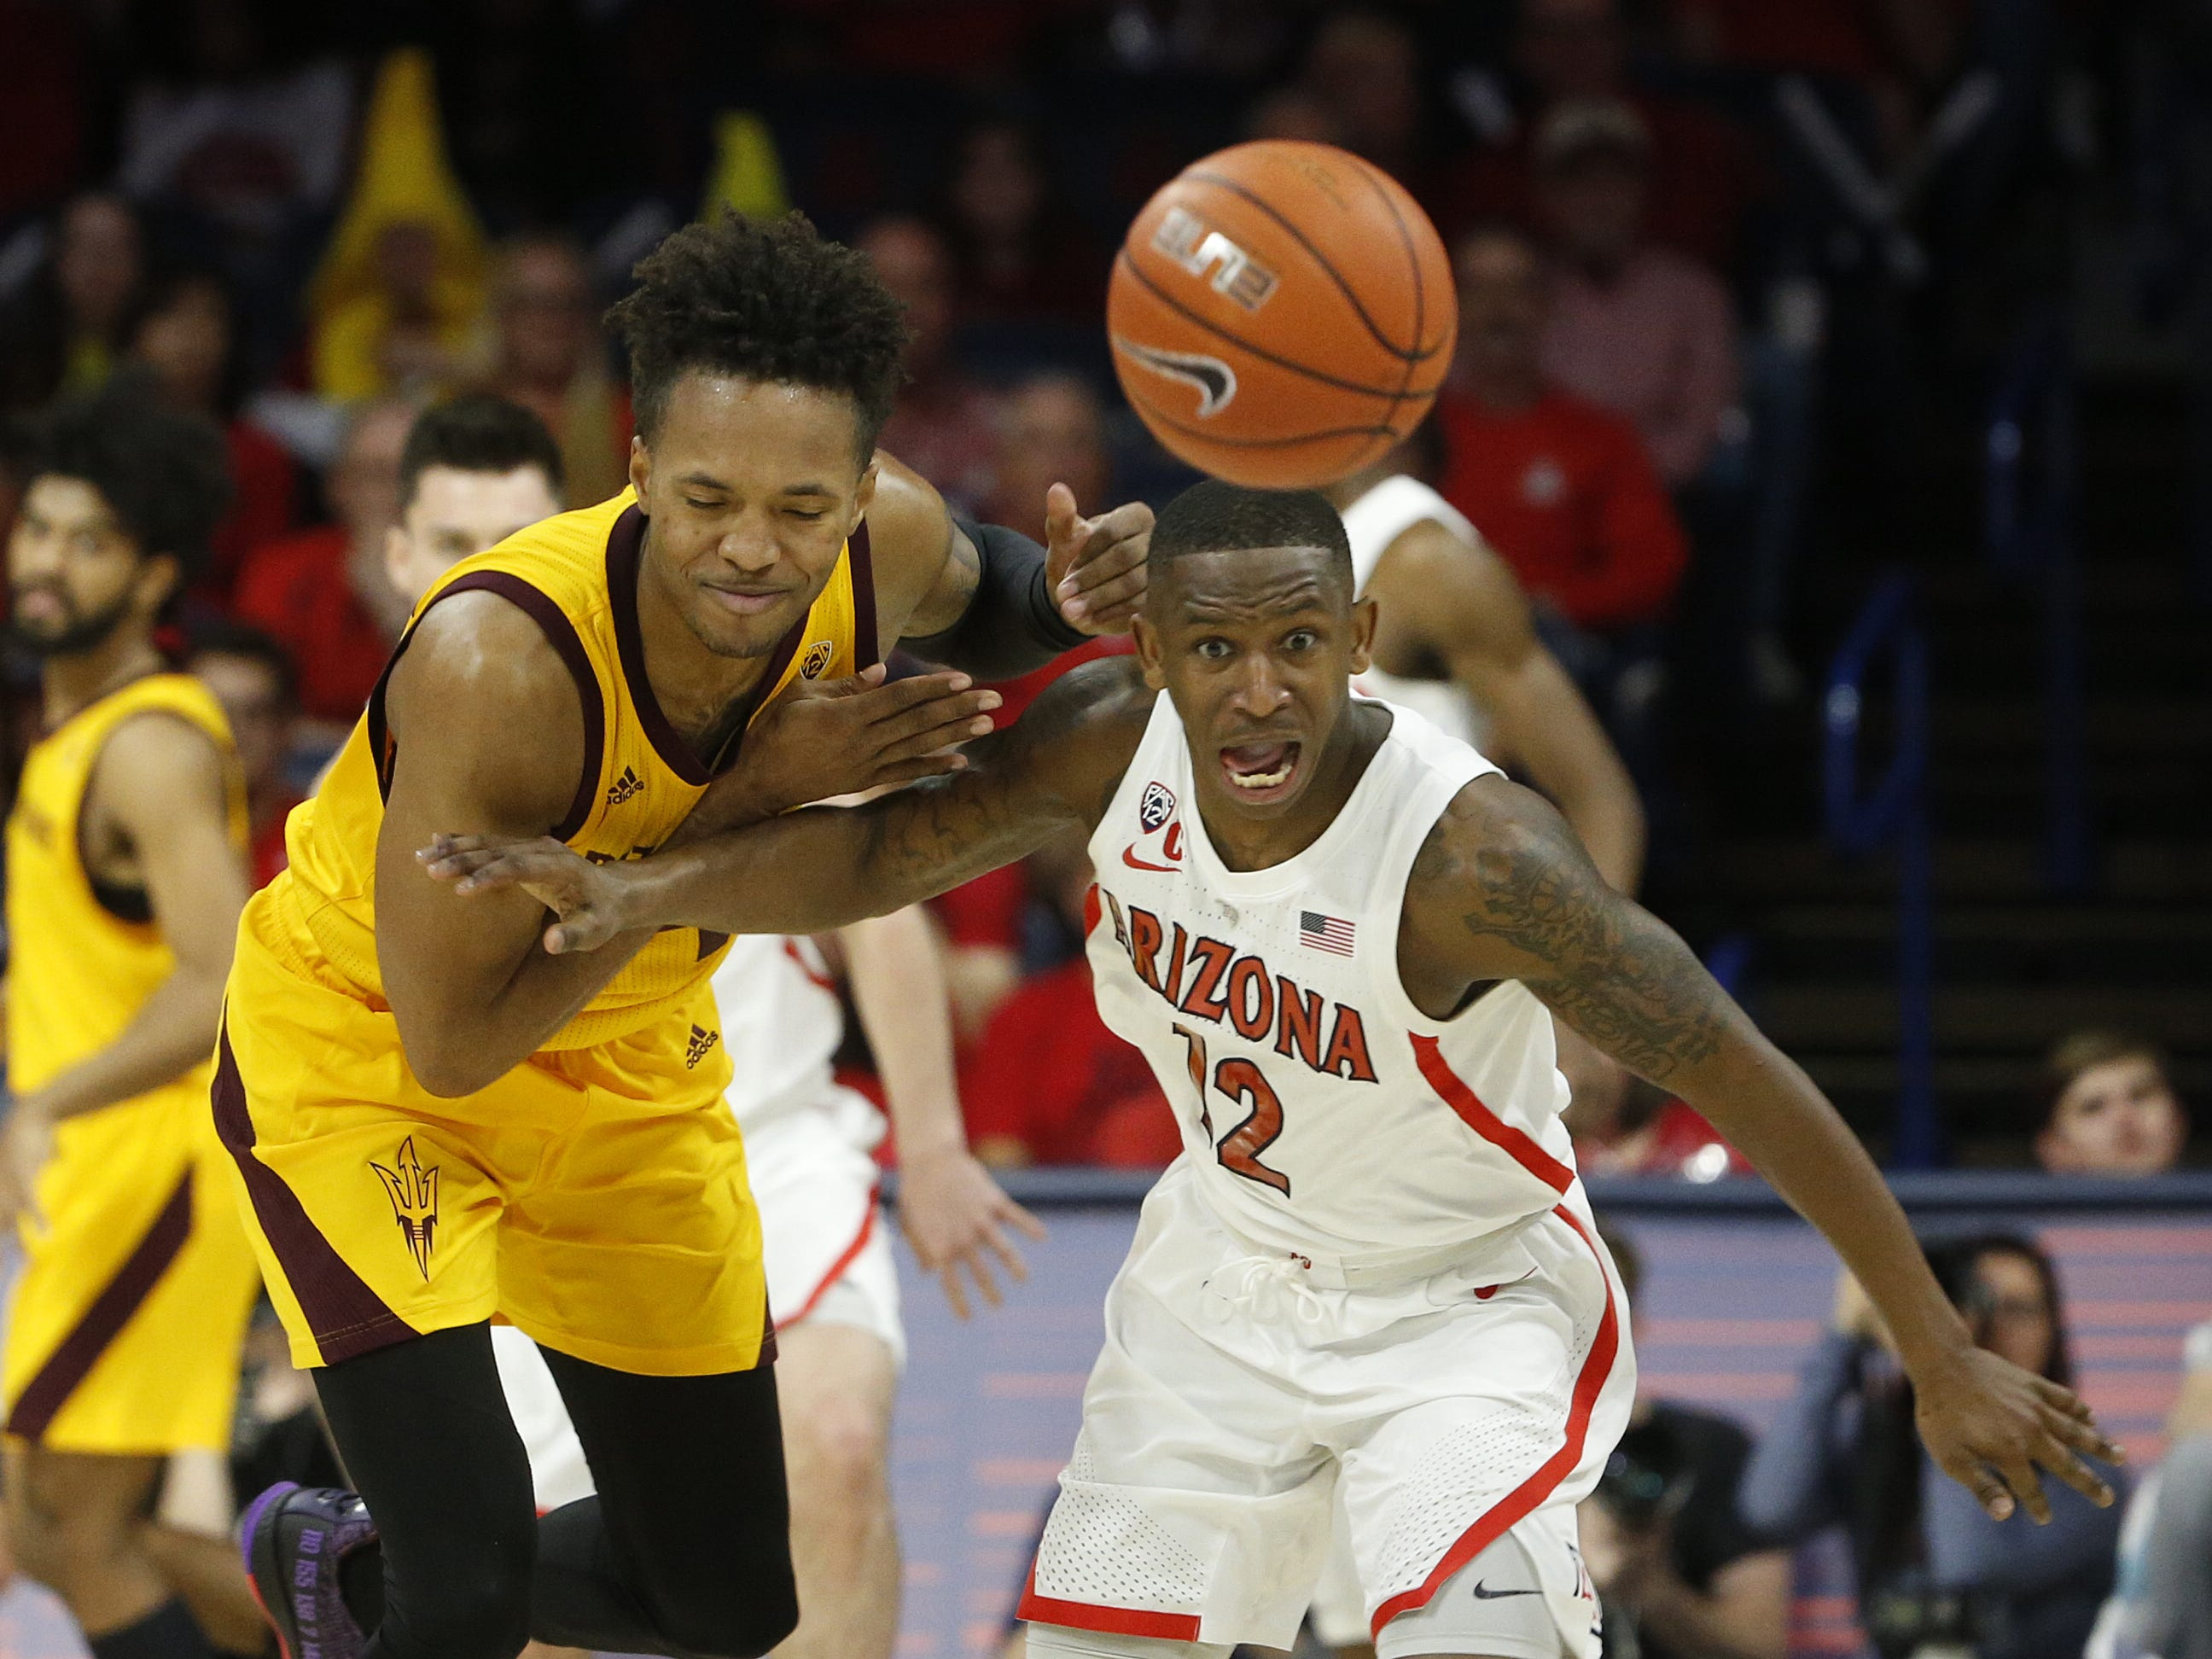 Arizona's Justin Coleman (12) steals the ball from ASU's Kamani Lawrence (14) during the first half at the McKale Memorial Center in Tucson, Ariz. on March 9, 2019.